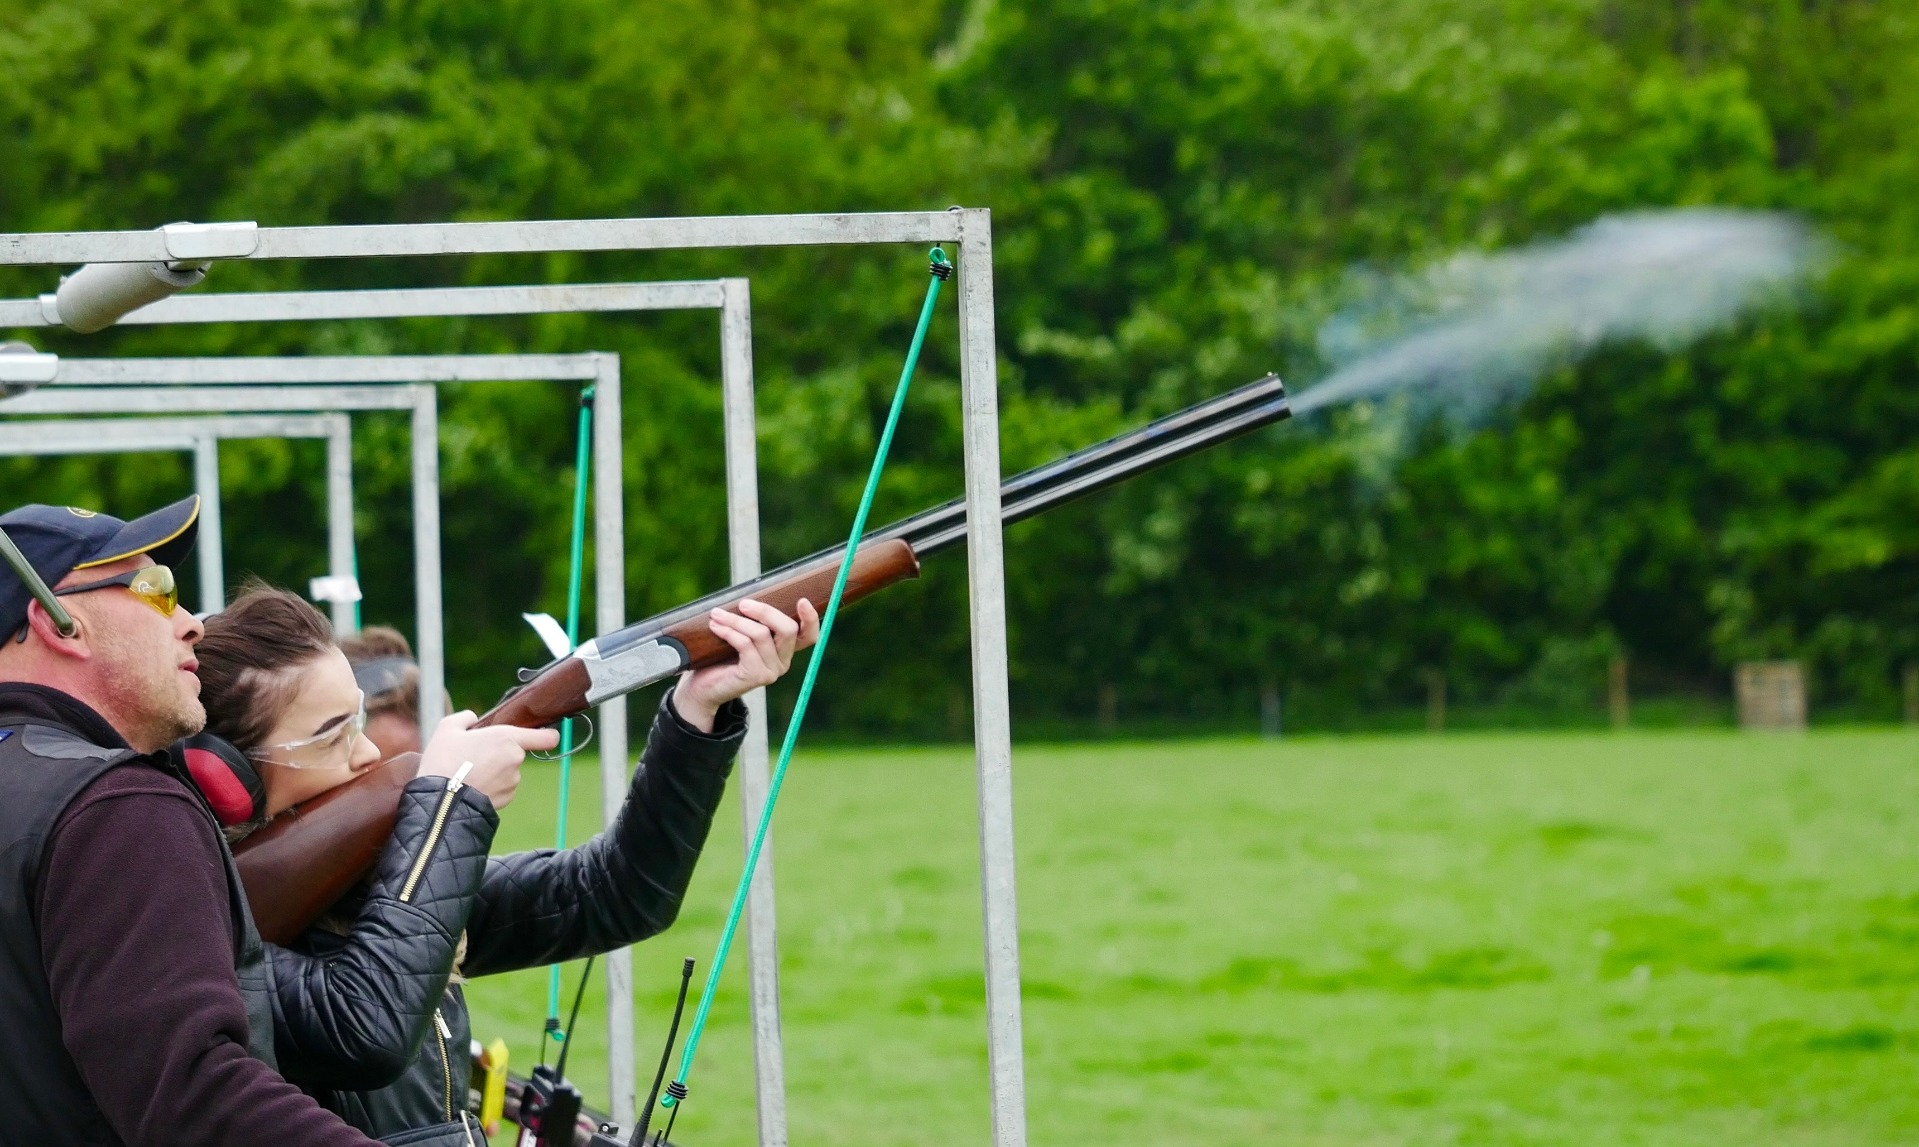 Lady shooting a gun in an field